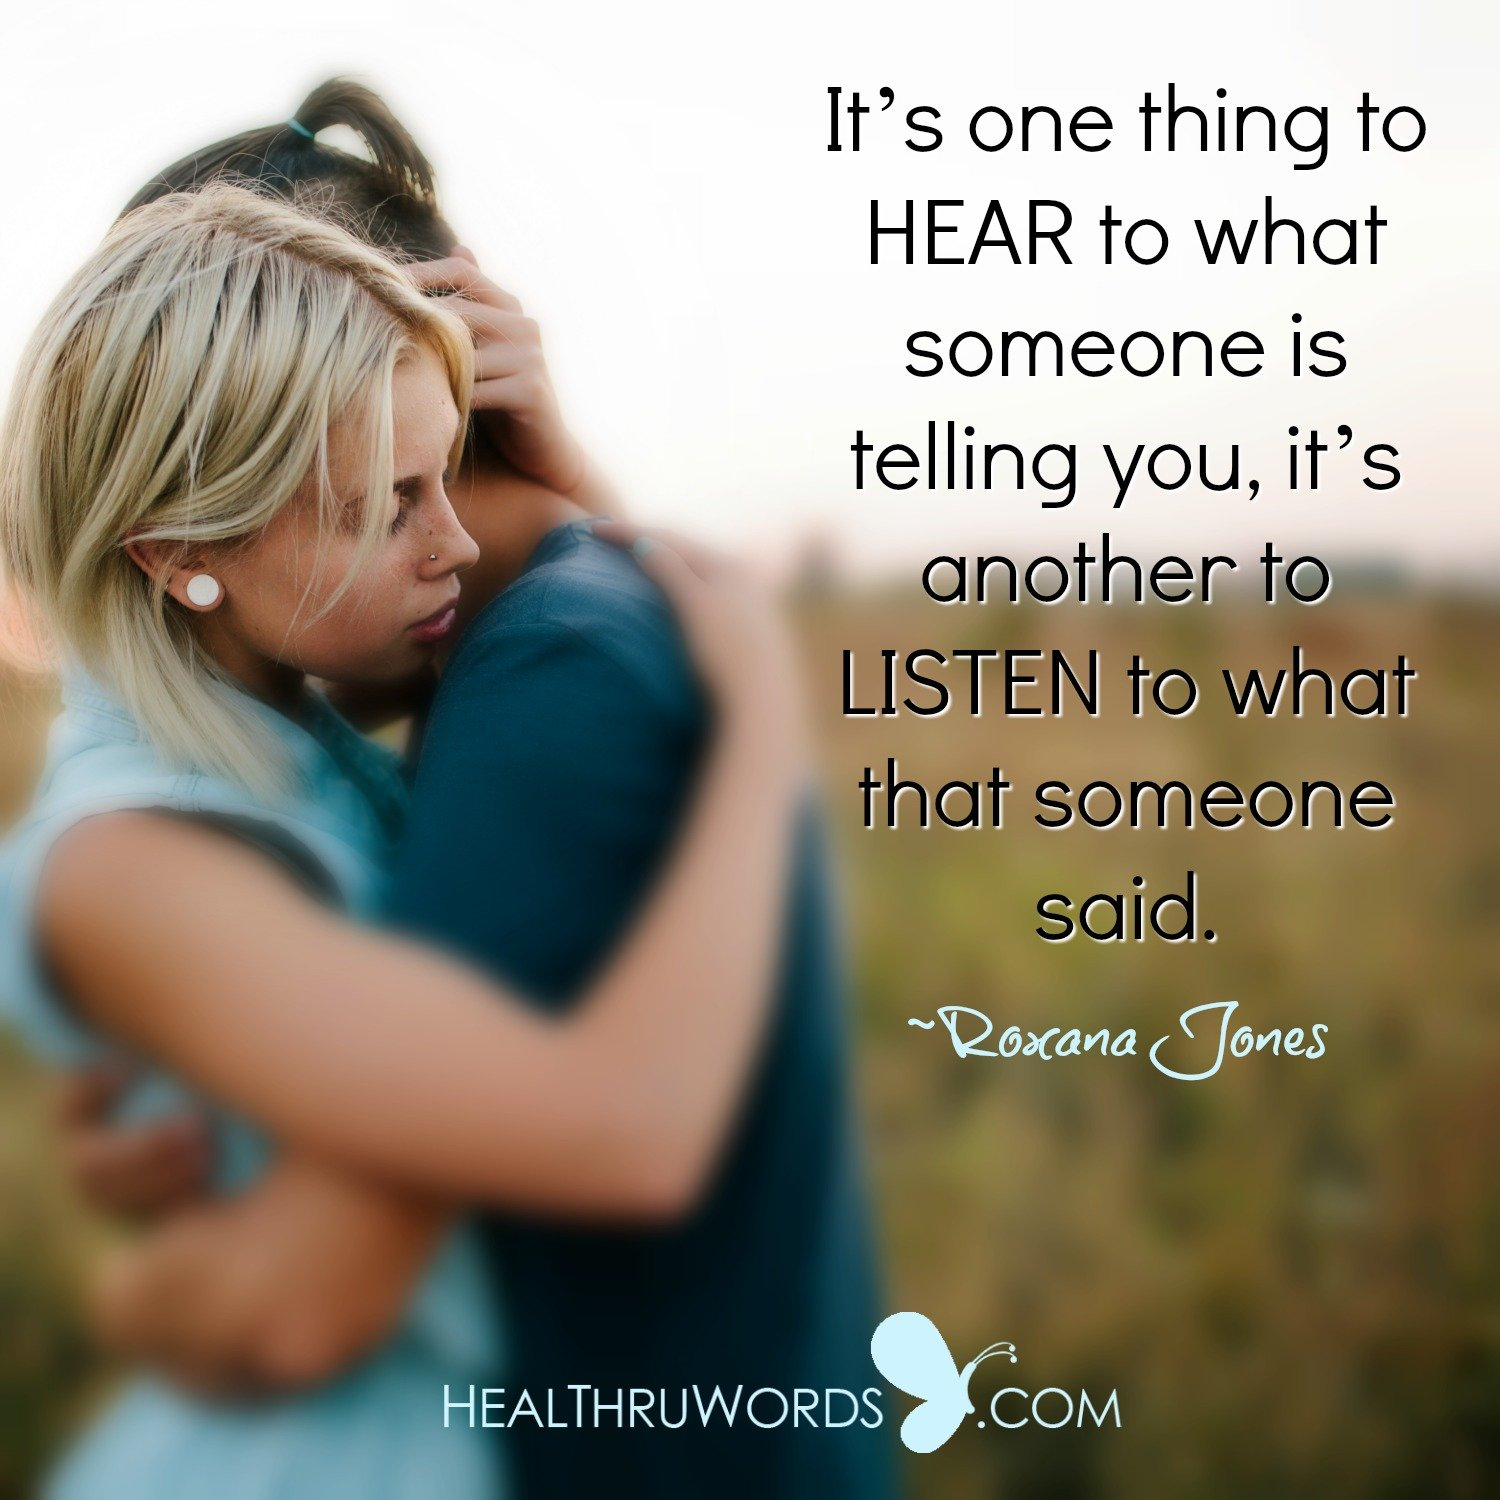 Inspirational Image: Heartful Listening